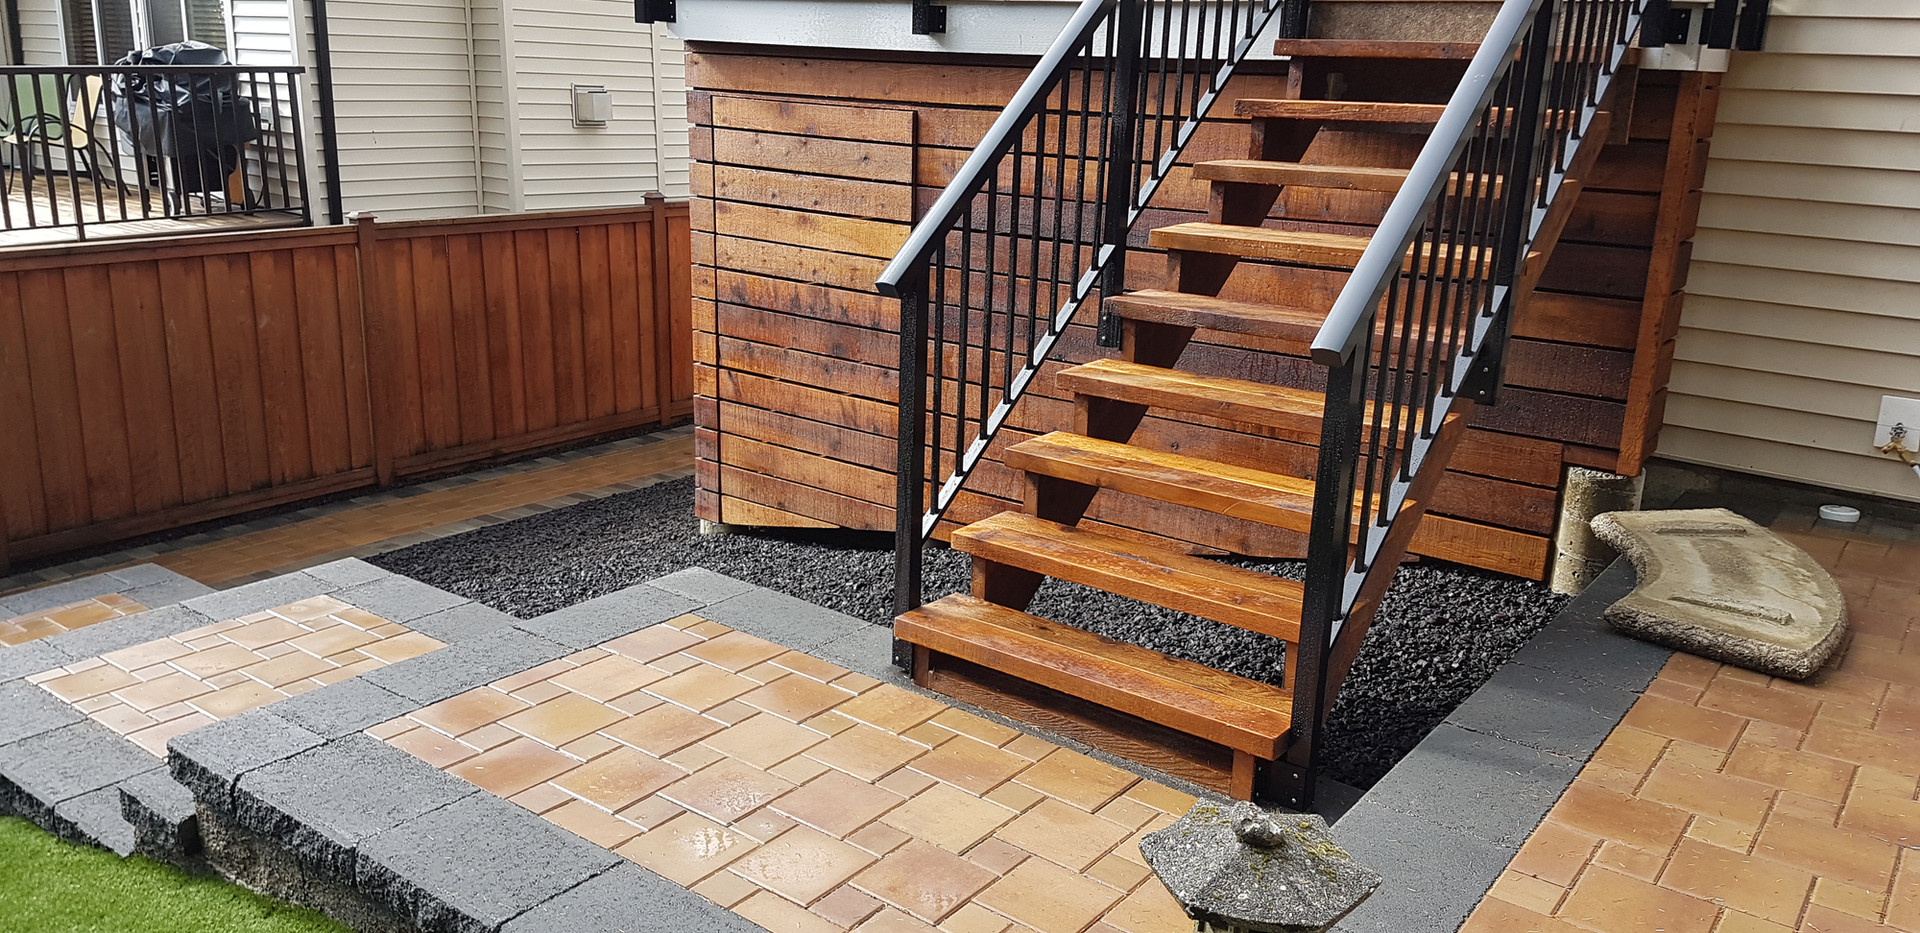 Weatherhead Contractor Ltd  Landscapes & Landscaping Project images including : Retaining Walls, Patios, Decking, Stairs, Pools, Cedar Fencing & more.